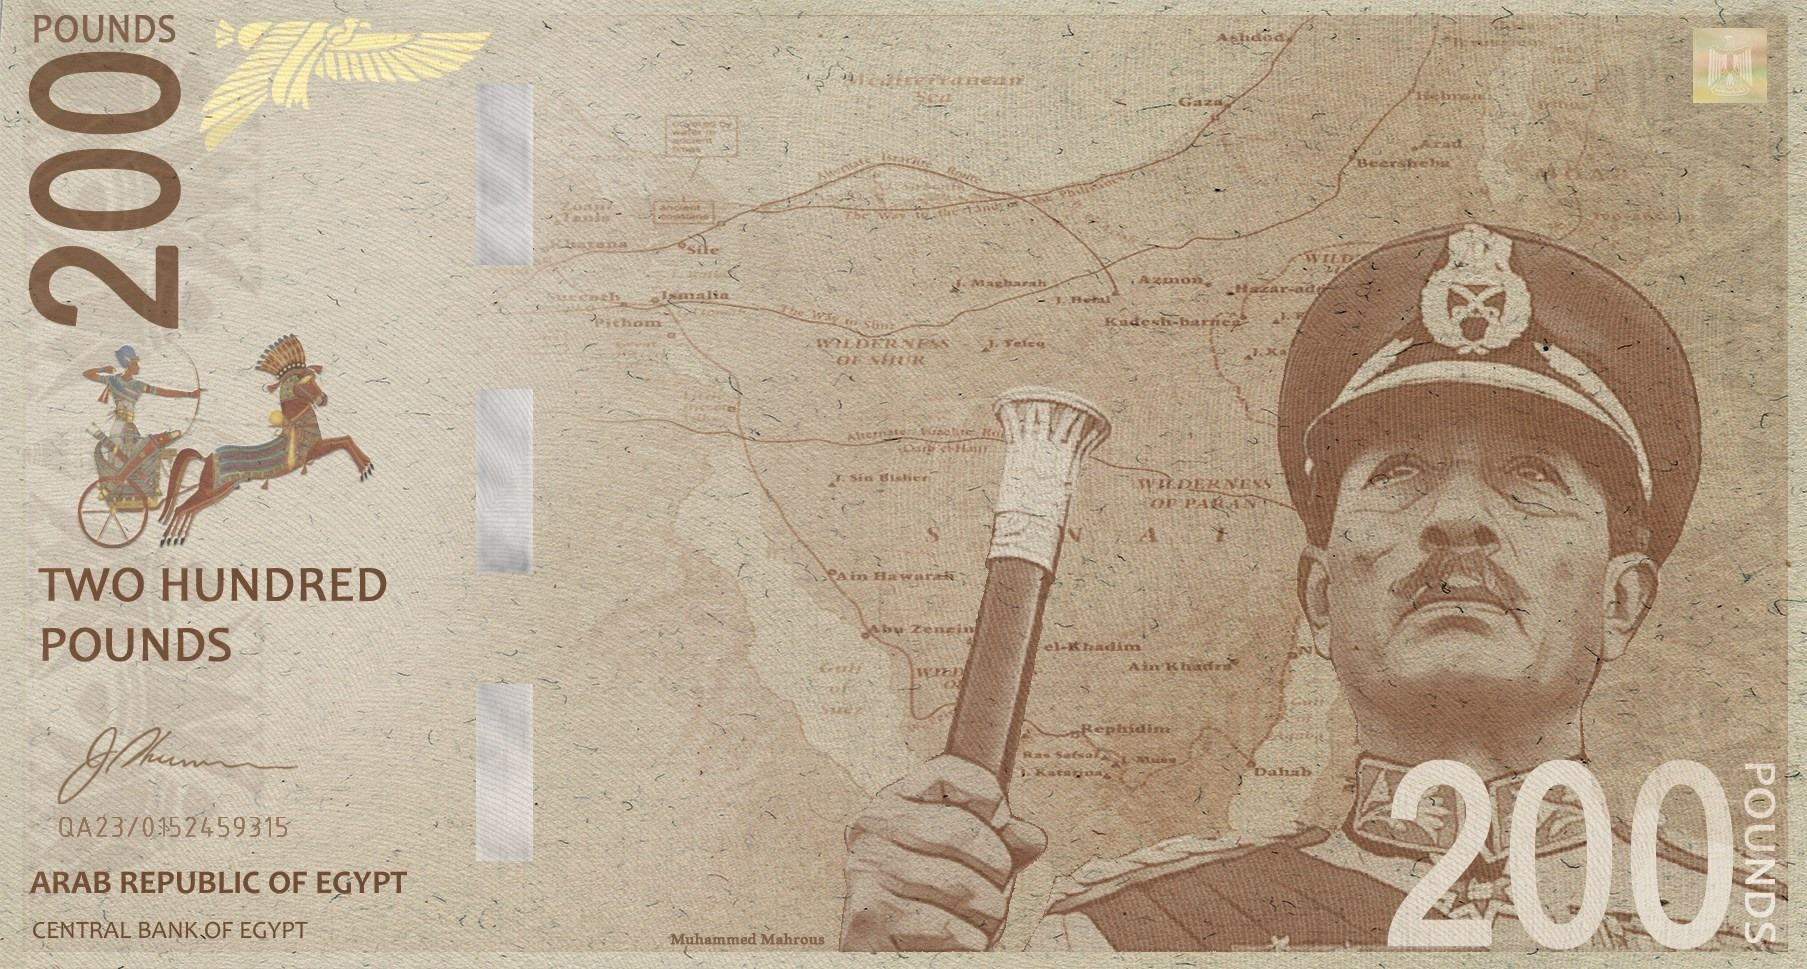 One Mans Currency Design Challenge Raises Questions About A